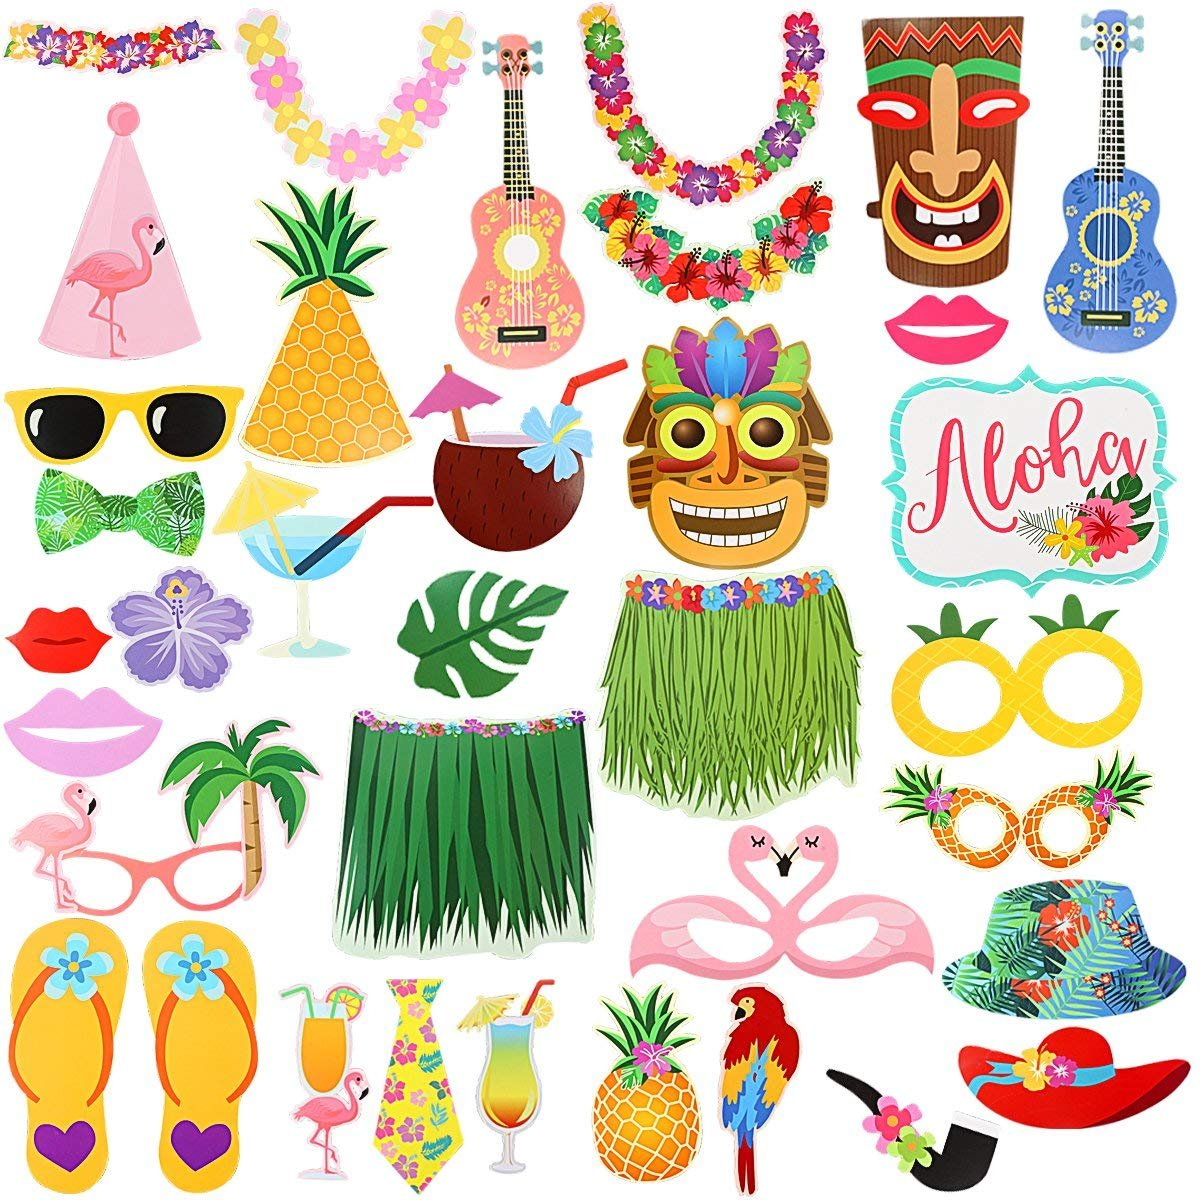 36pcs Luau Photo Booth Props - Hawaiian/Tropical/Tiki/Summer Pool and Holiday Party Decorations Supplies